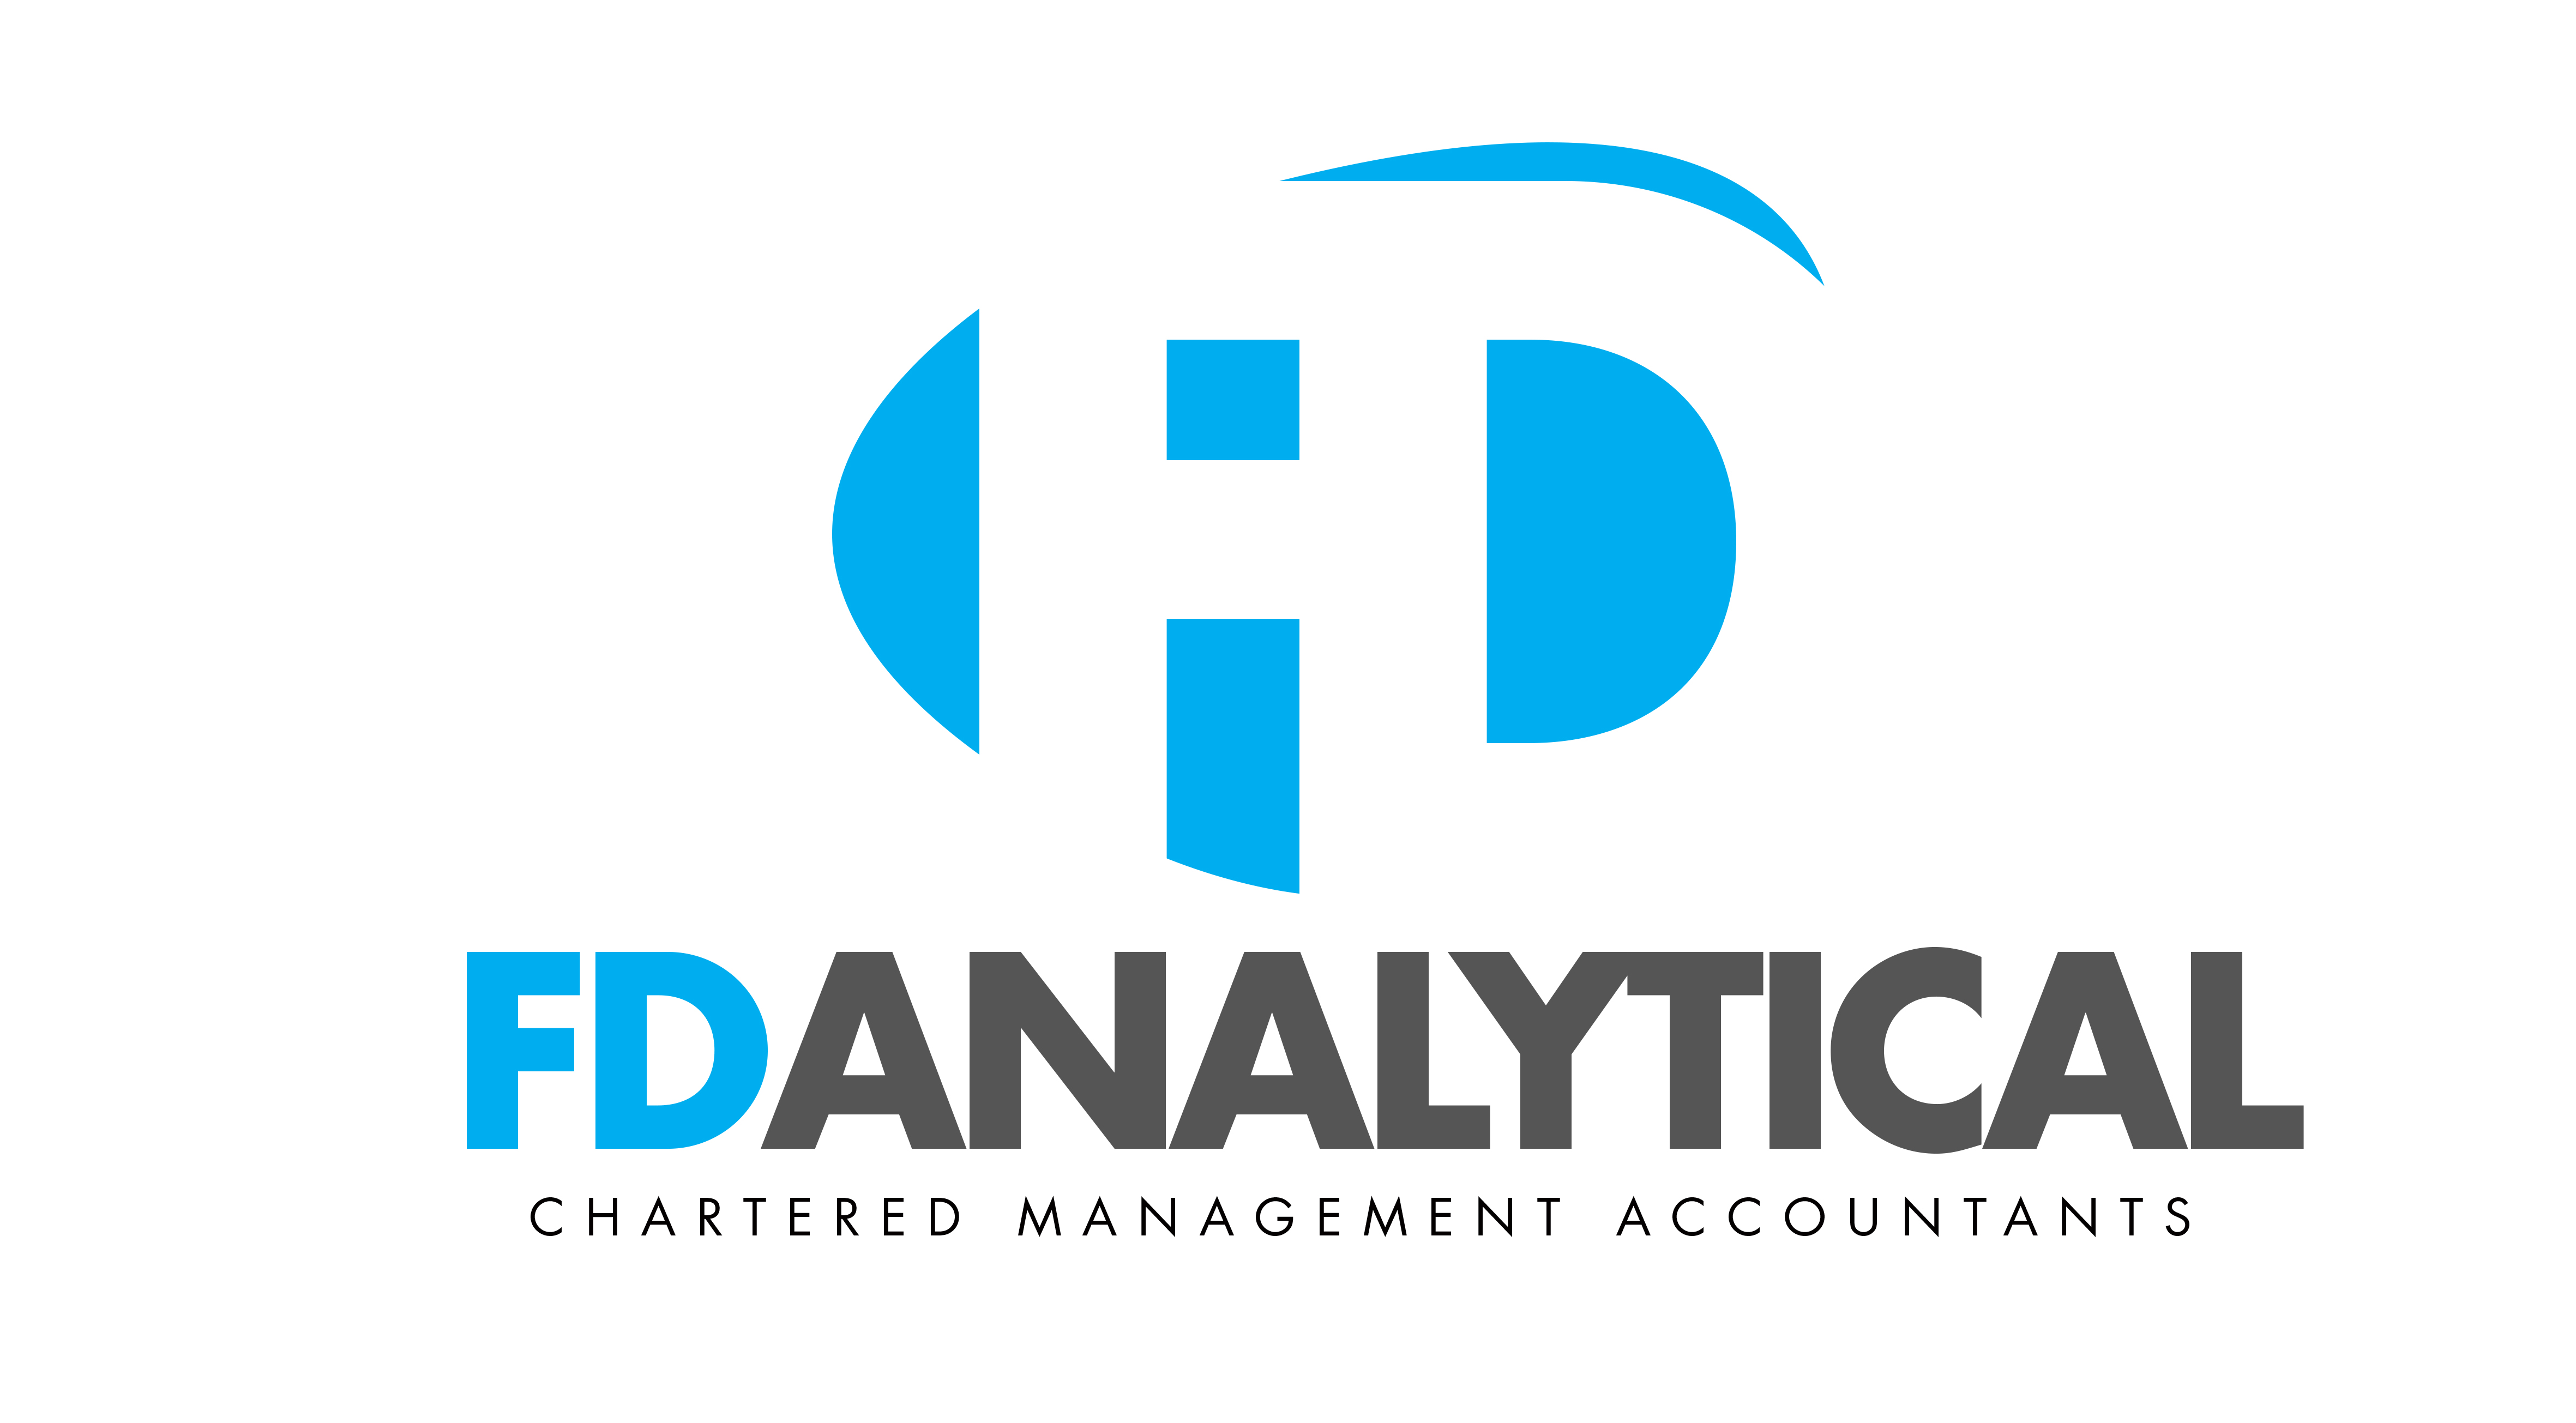 FD Analytical - Chartered Management Accountants